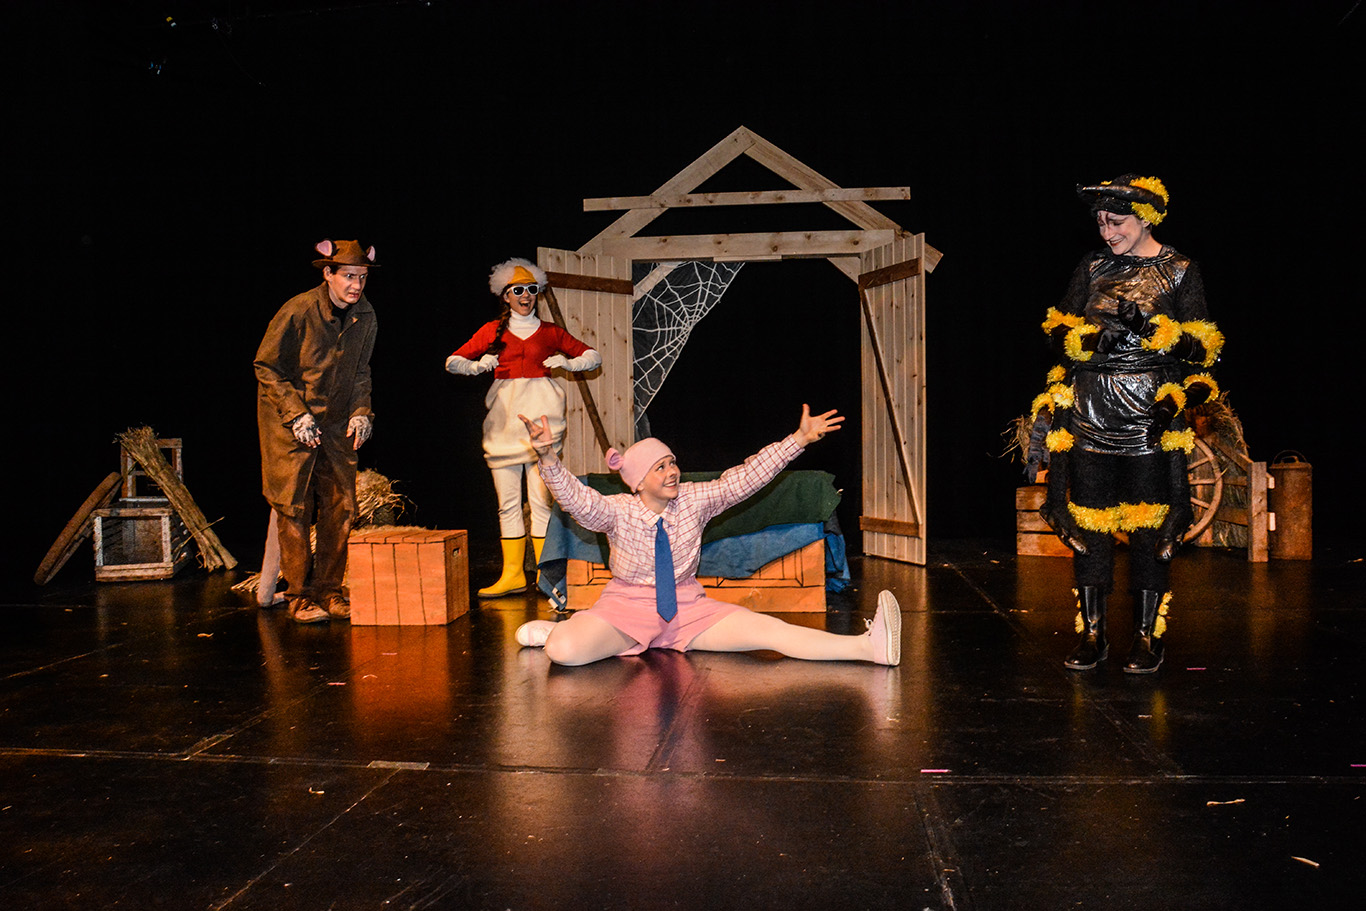 Charlotte's Web Spins Tale of Friendship